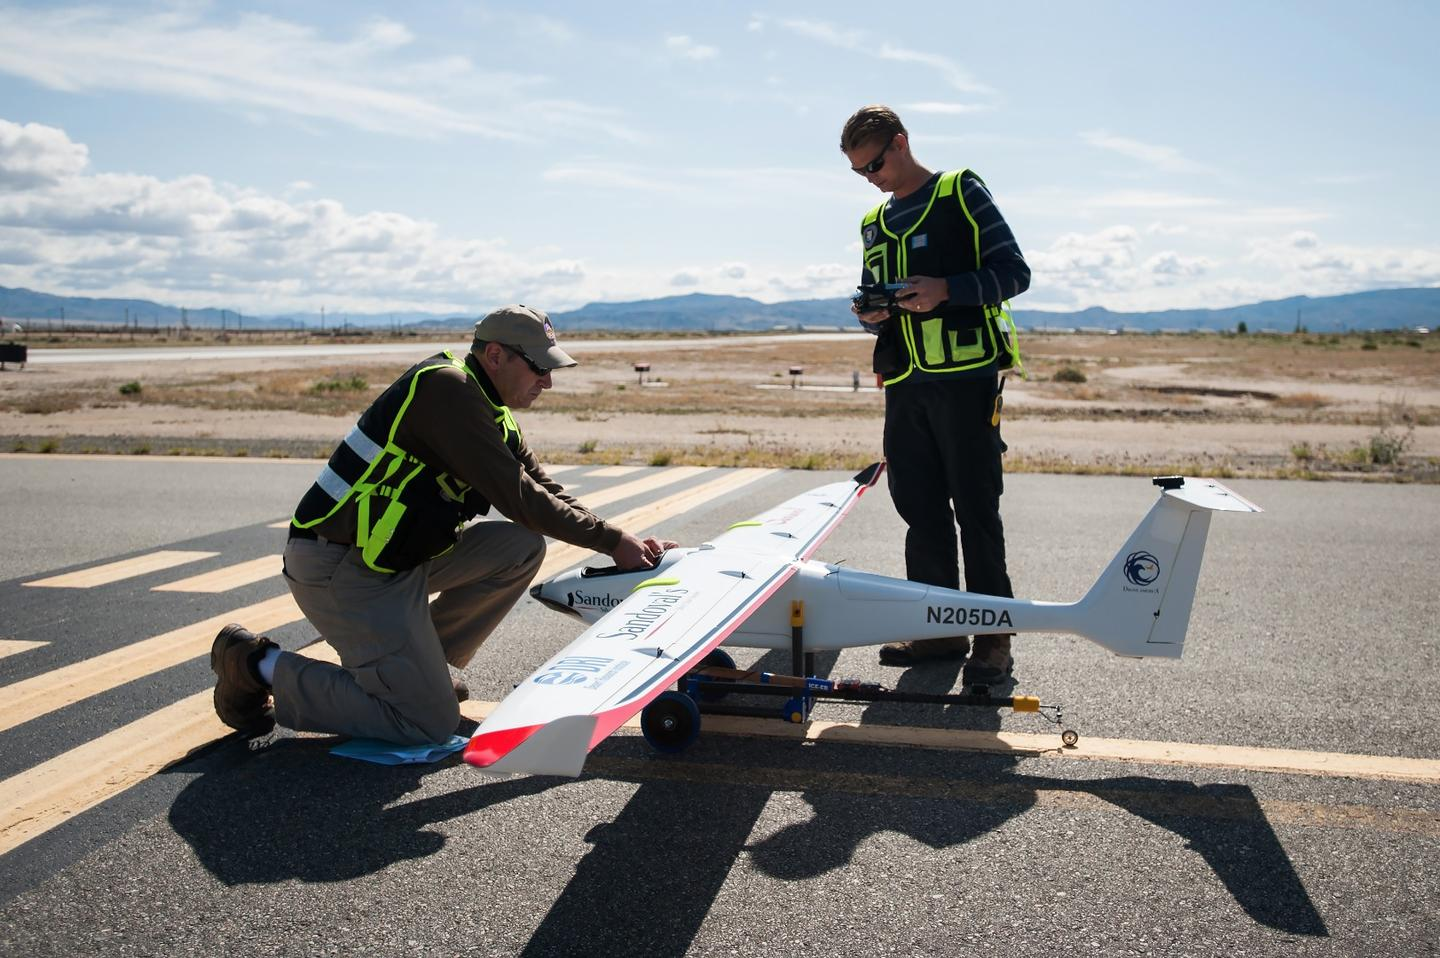 By relying on drones for cloud-seeding, the process could potentially become cheaper and safer, according to DRI